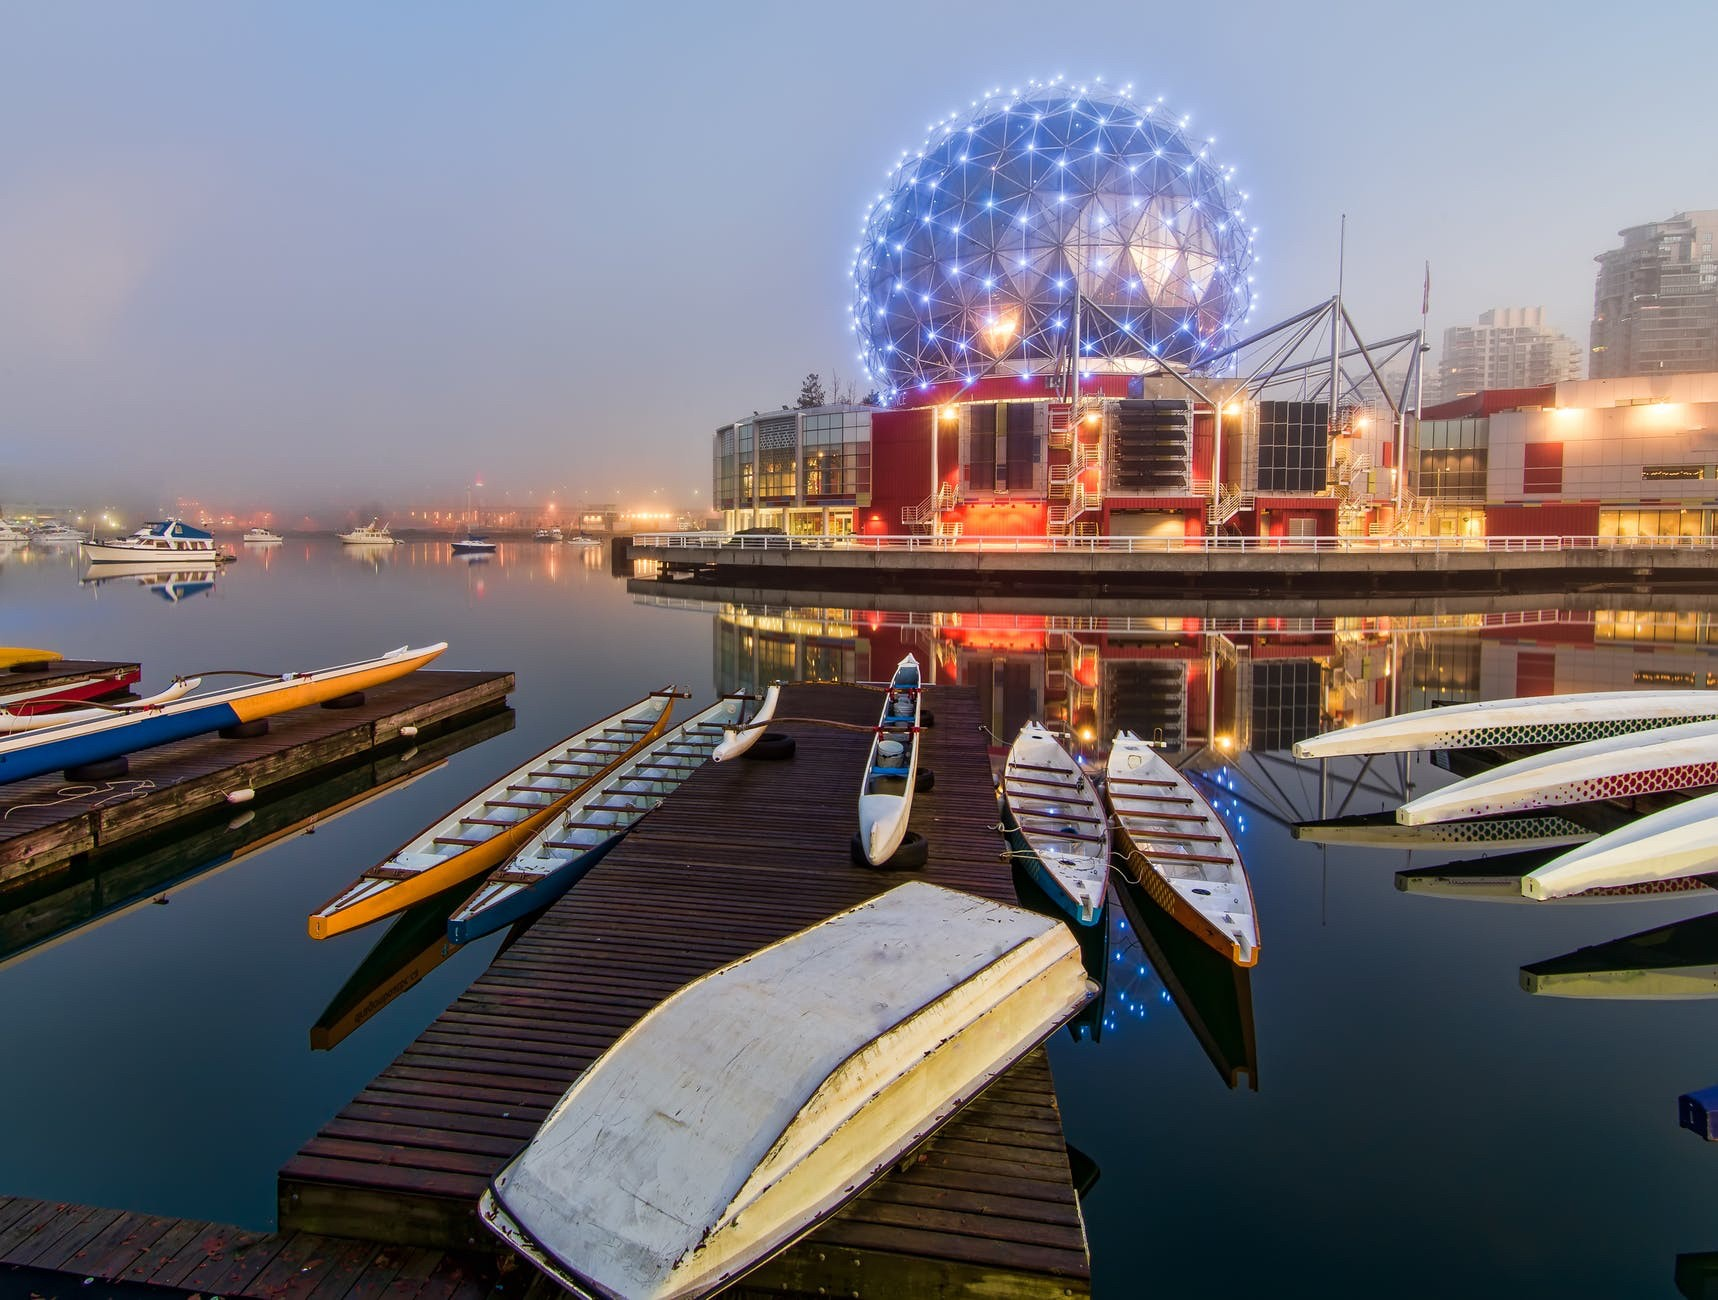 Flight Deal Round Trip From San Francisco Area to Vancouver #sanfrancisco #vancouver #1week